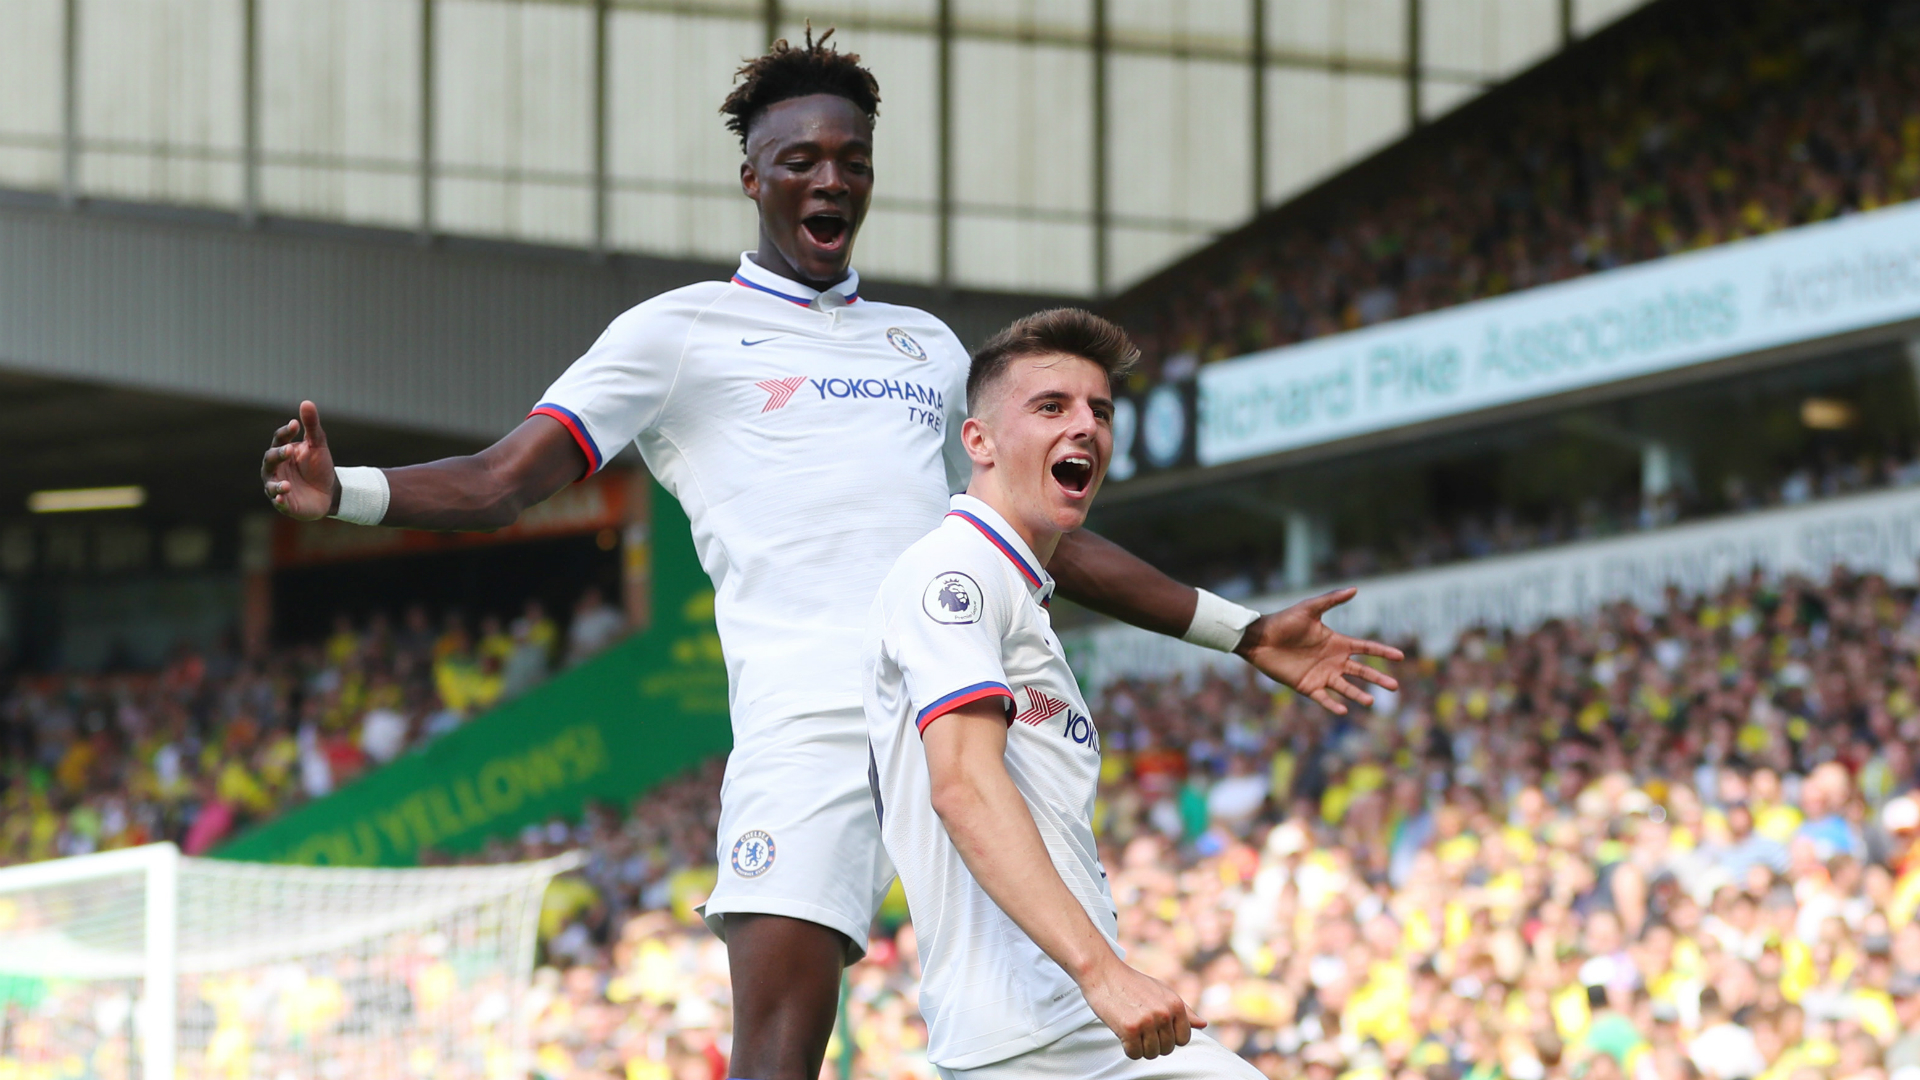 Chelsea rely on youth while City's experience shines - the Premier League Data Diary